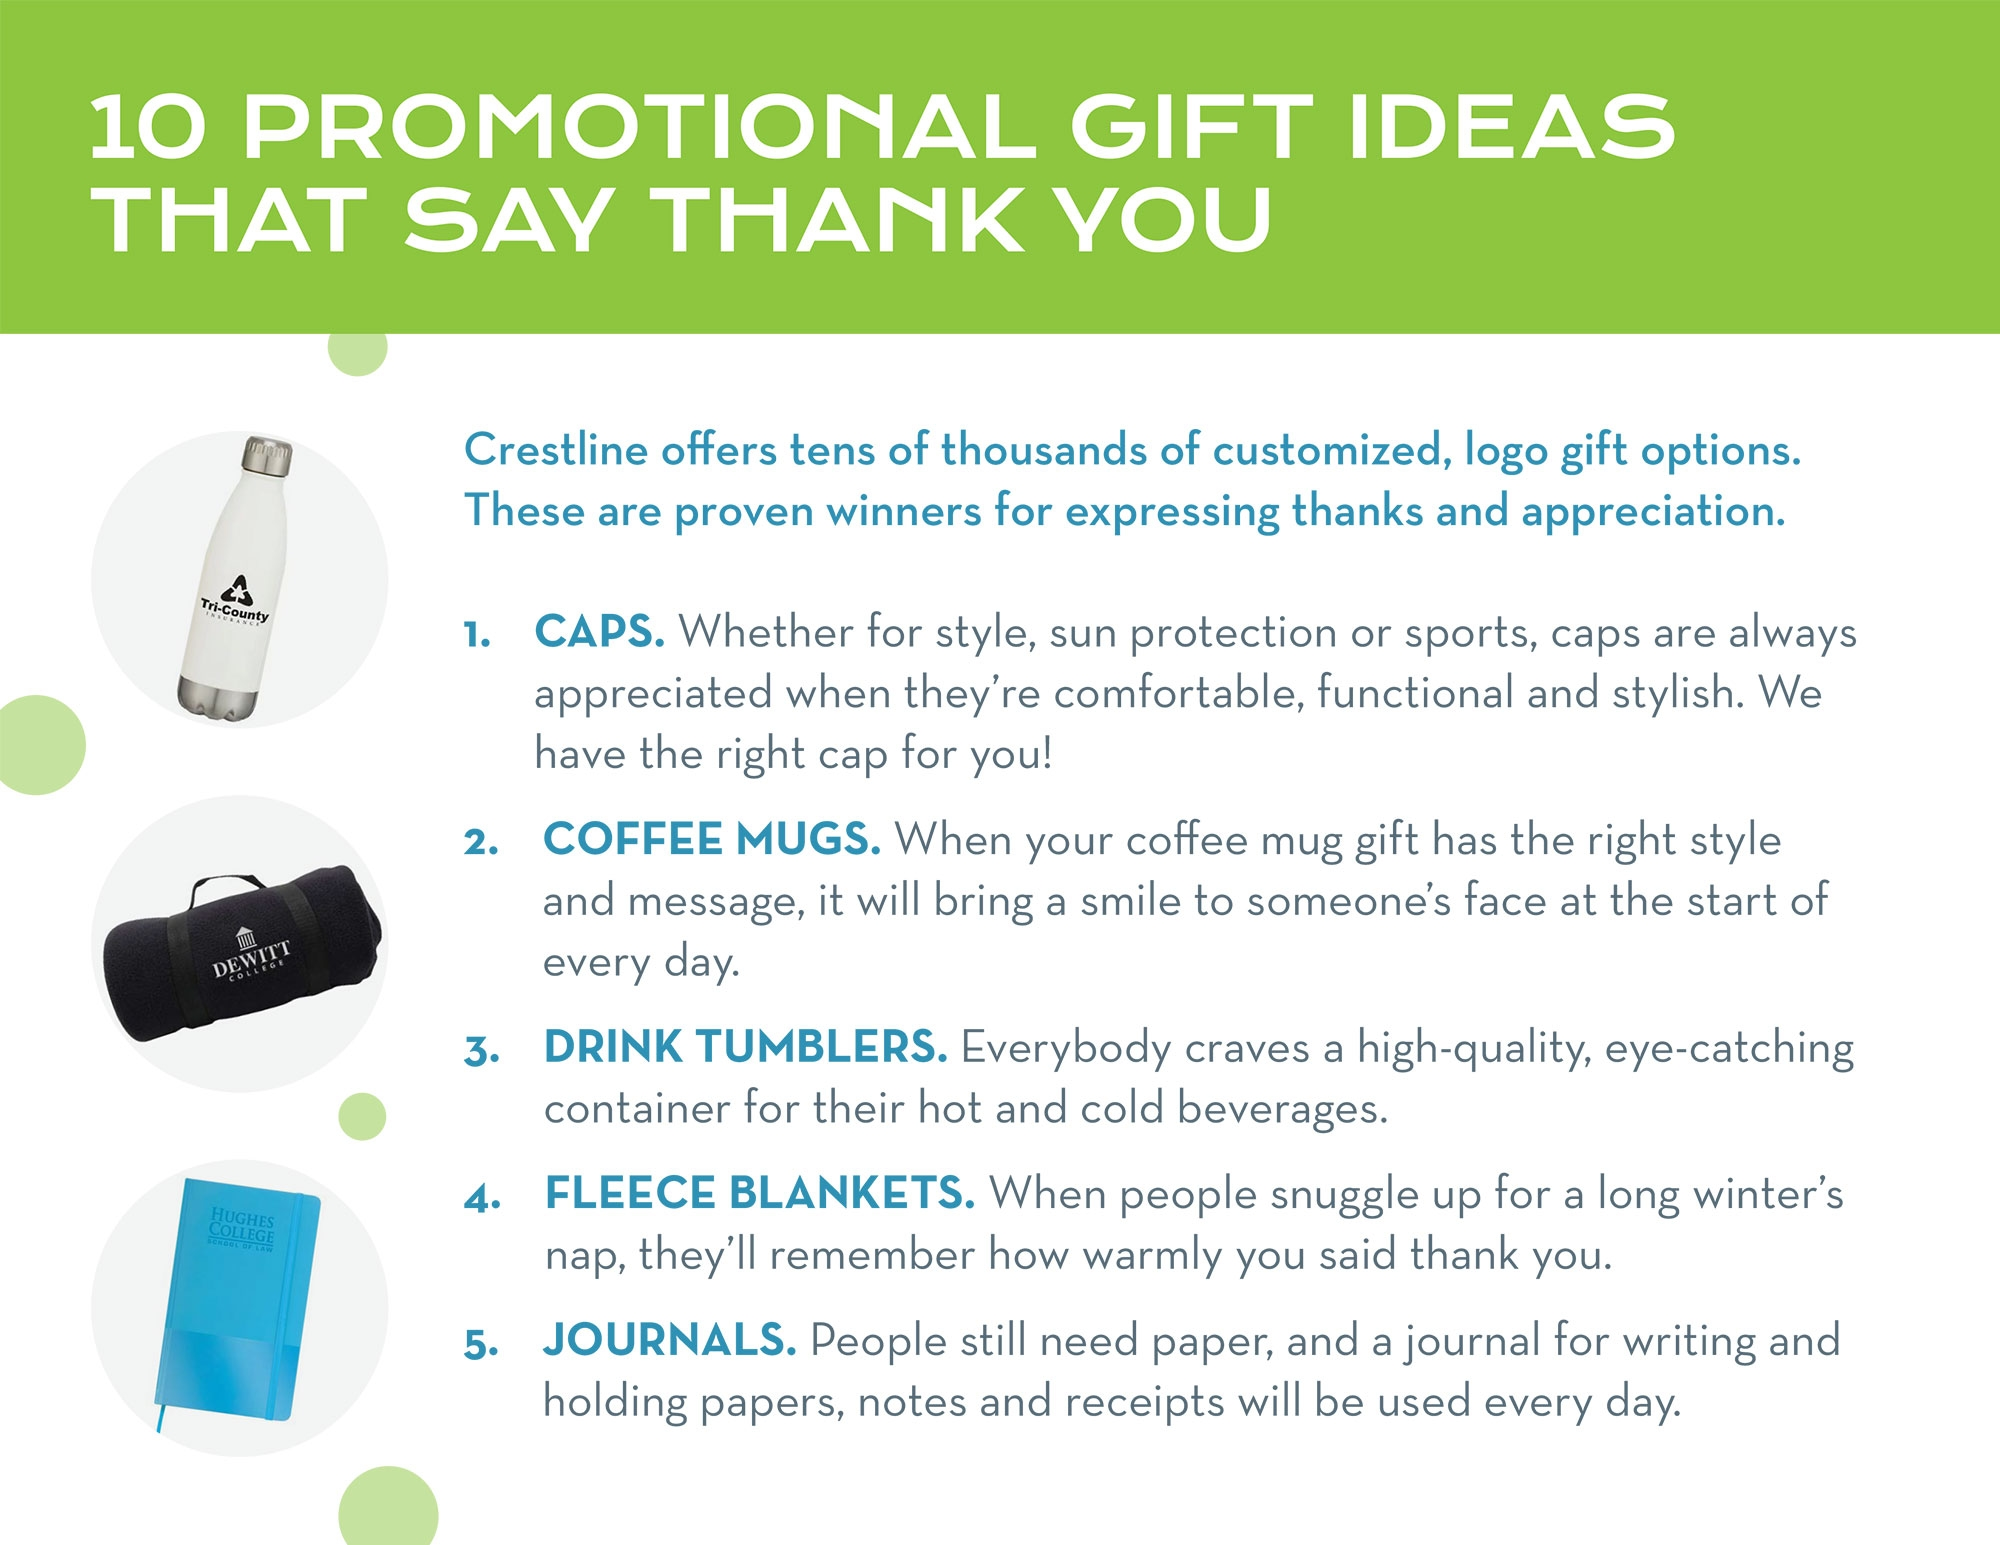 Promotional Gift Ideas to Say Thank You